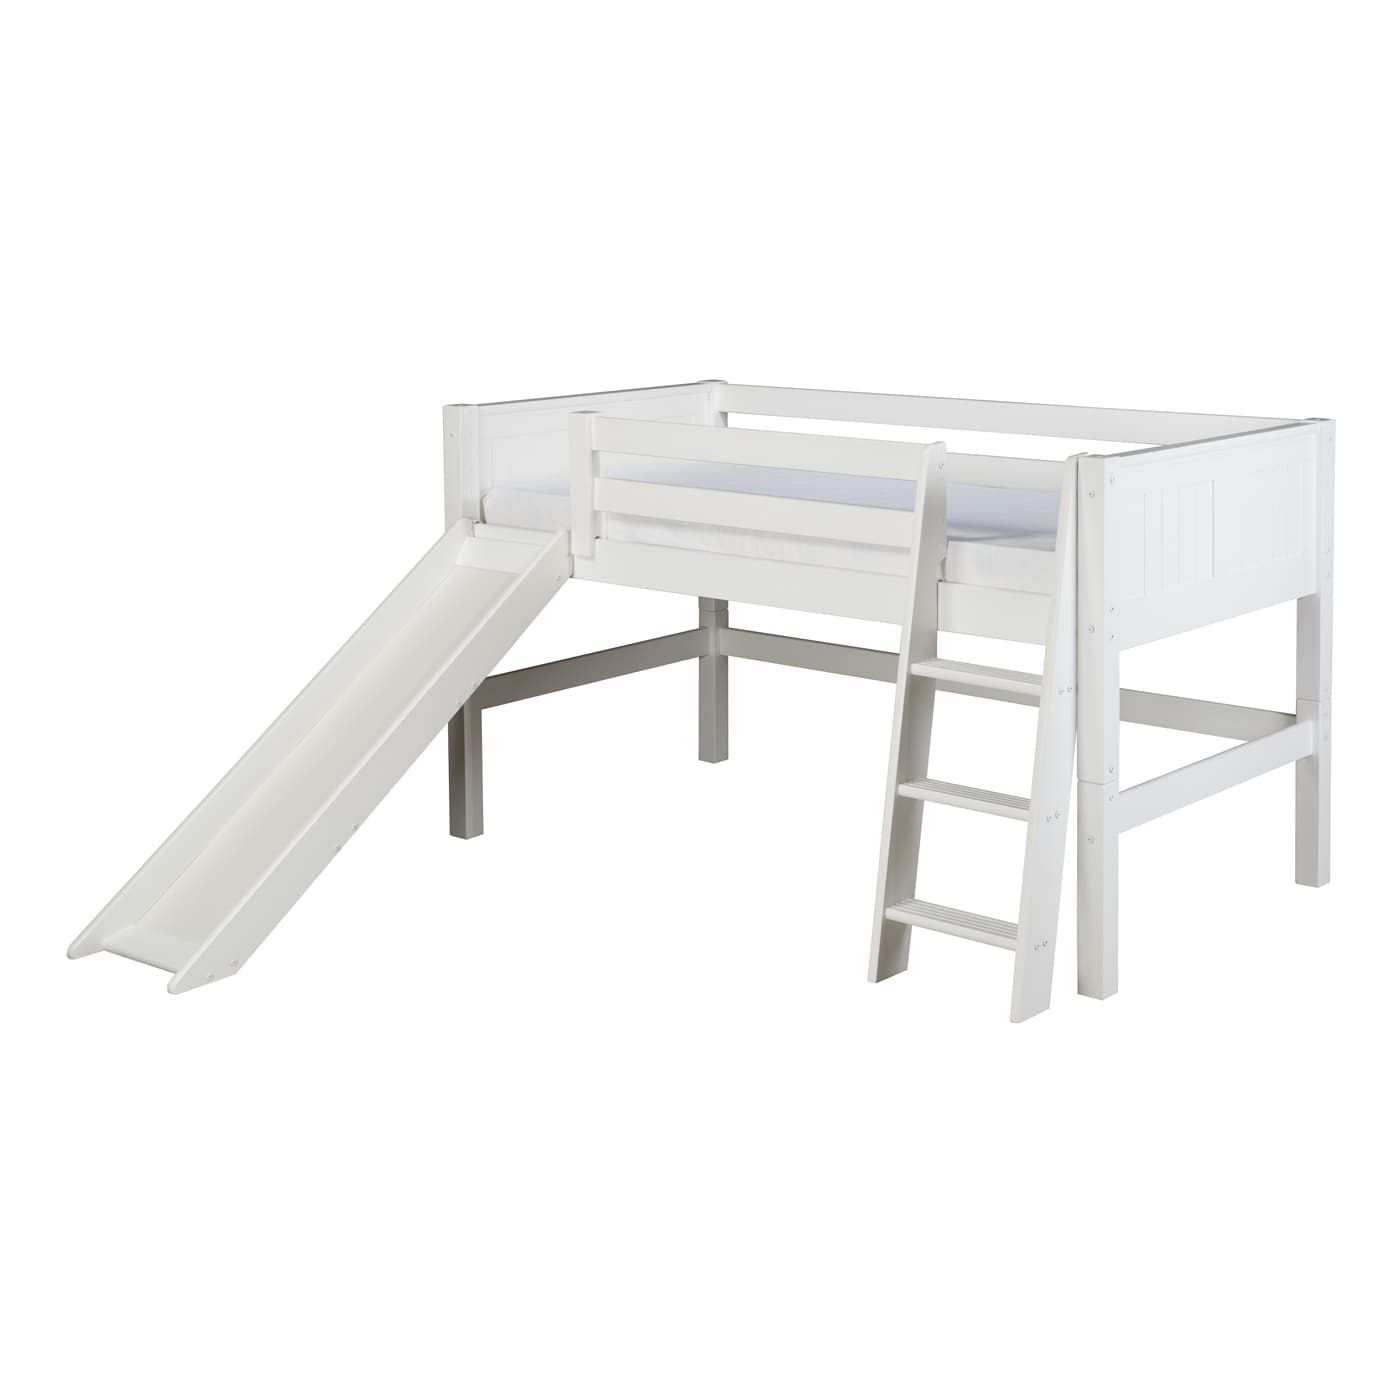 Loft bed with slide weight limit  Shop Camaflexi C Panel Low Loft Bed with Slide at The Mine Browse